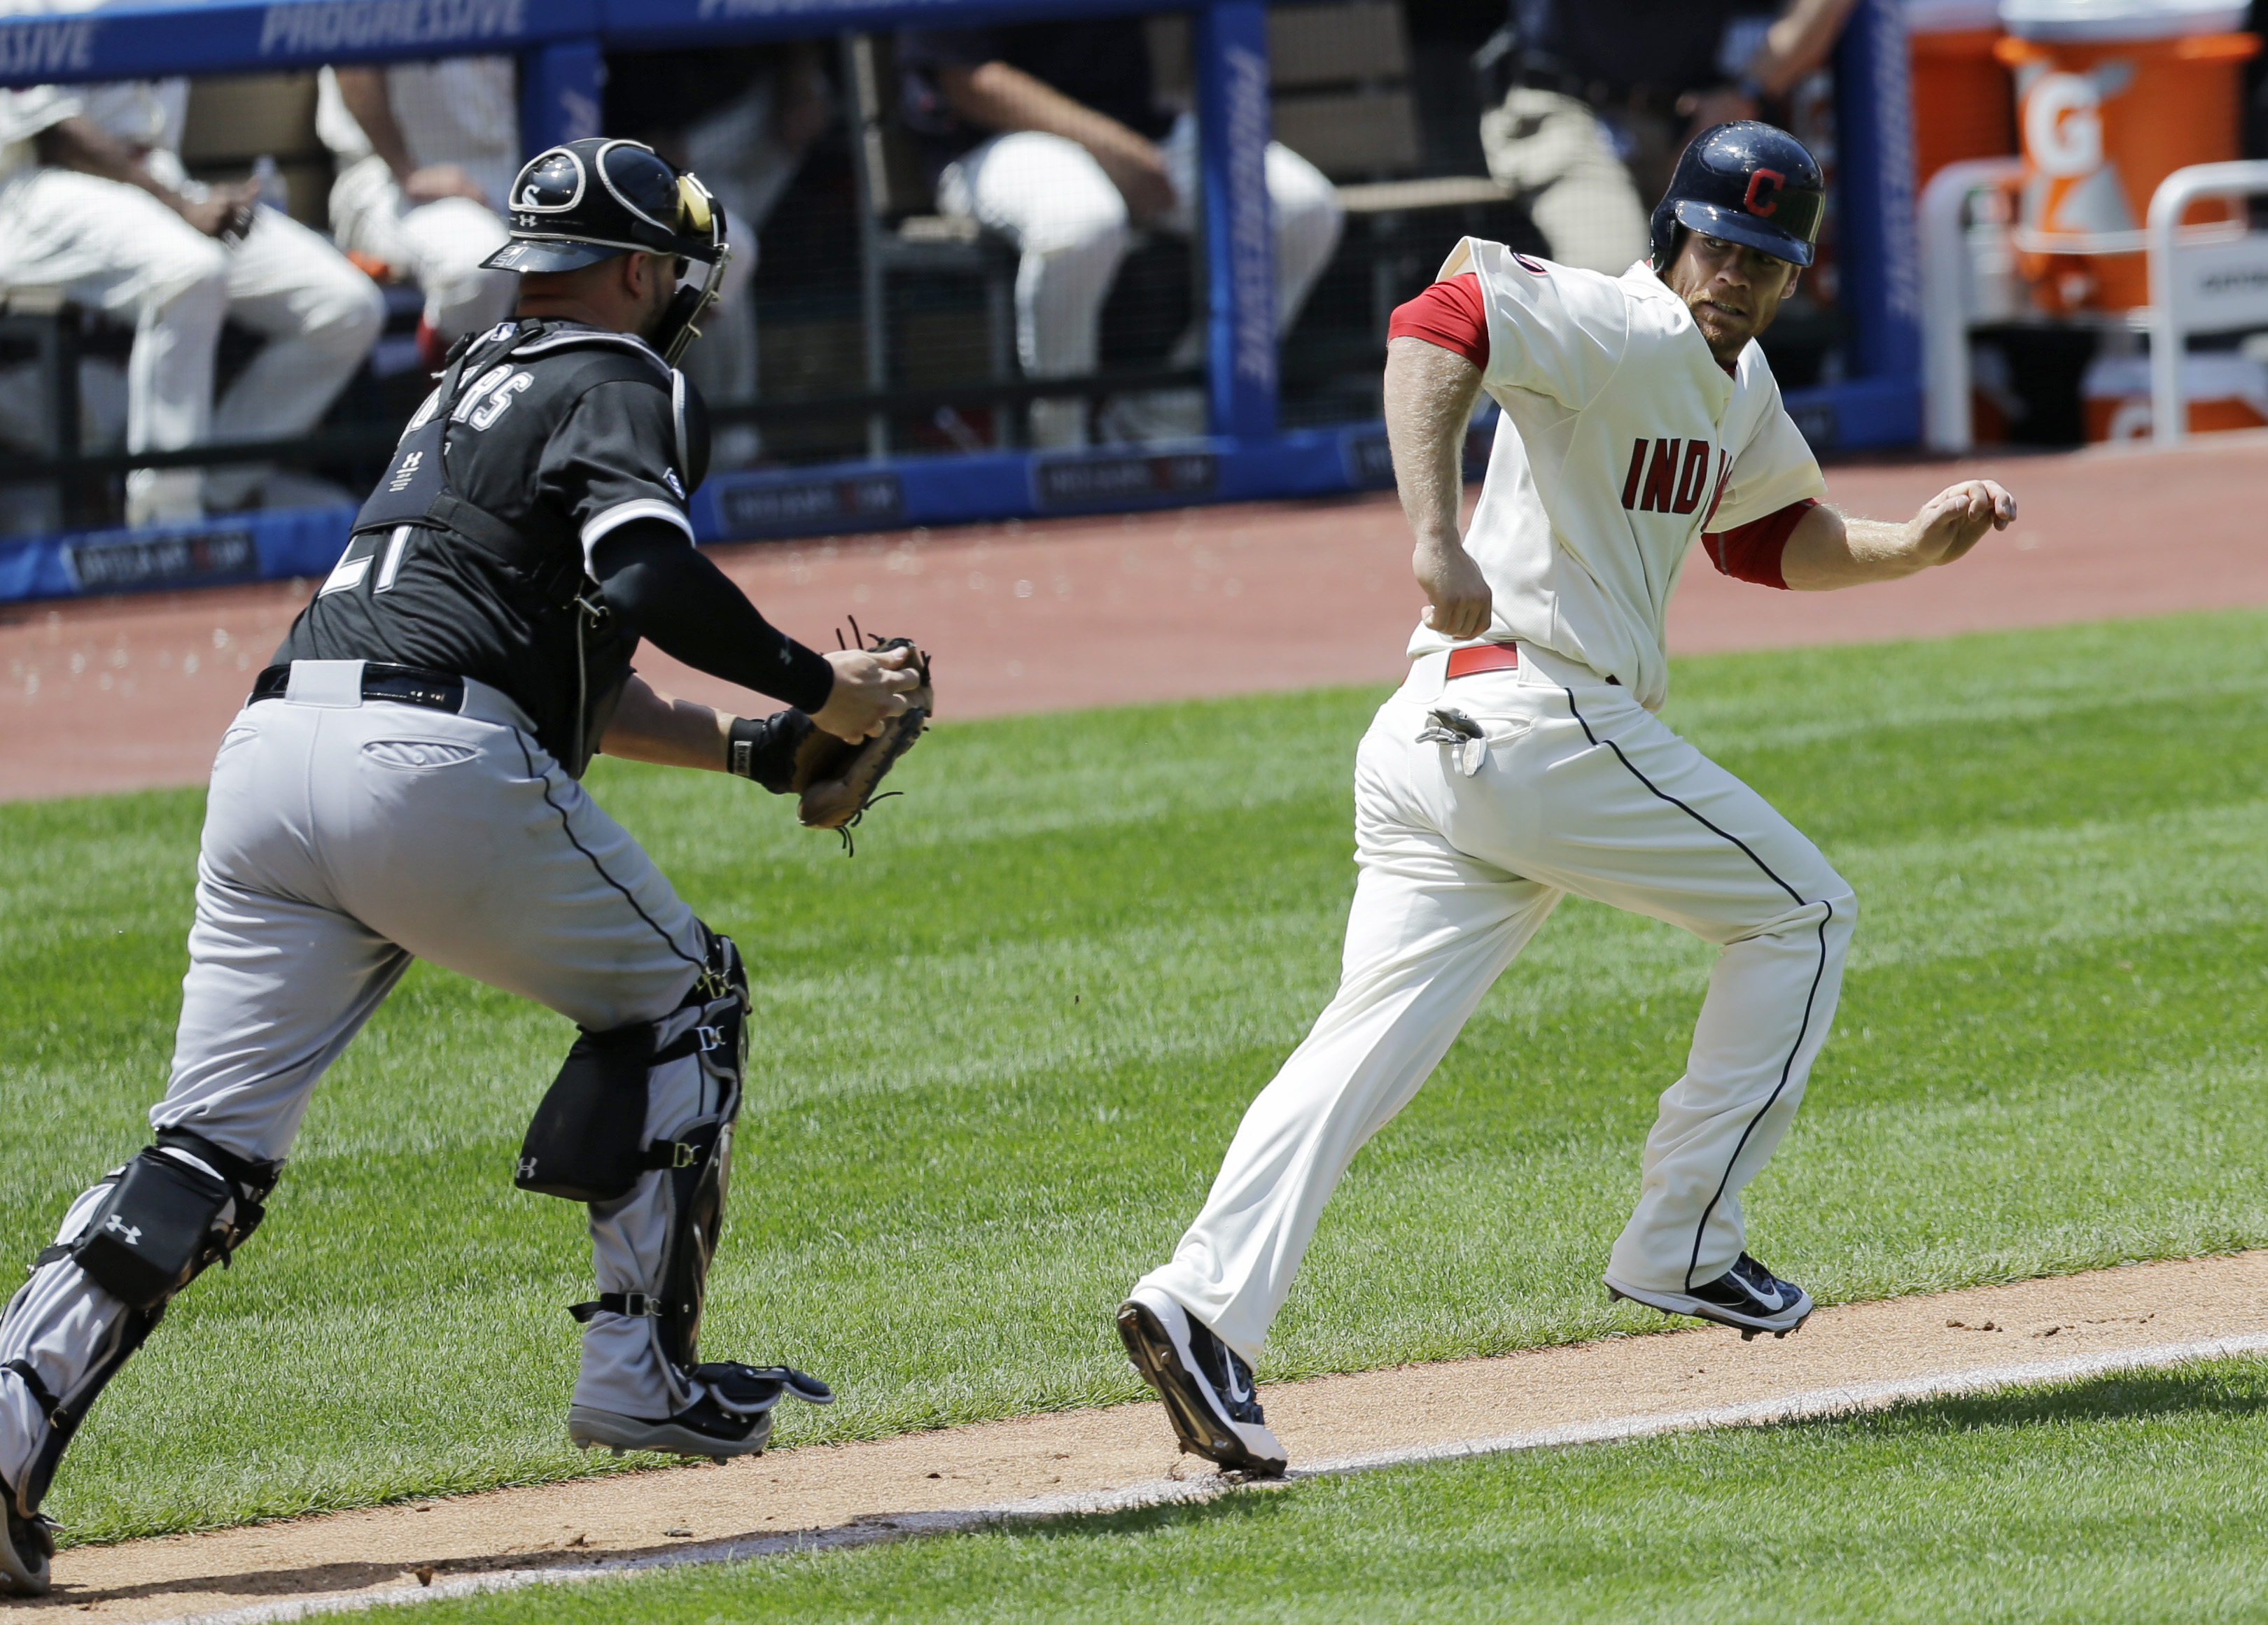 Cleveland Indians' Brandon Moss, right, looks back as Chicago White Sox catcher Tyler Flowers chases him in the third inning of a baseball game, Sunday, July 26, 2015, in Cleveland. Moss was out on the play. (AP Photo/Tony Dejak)